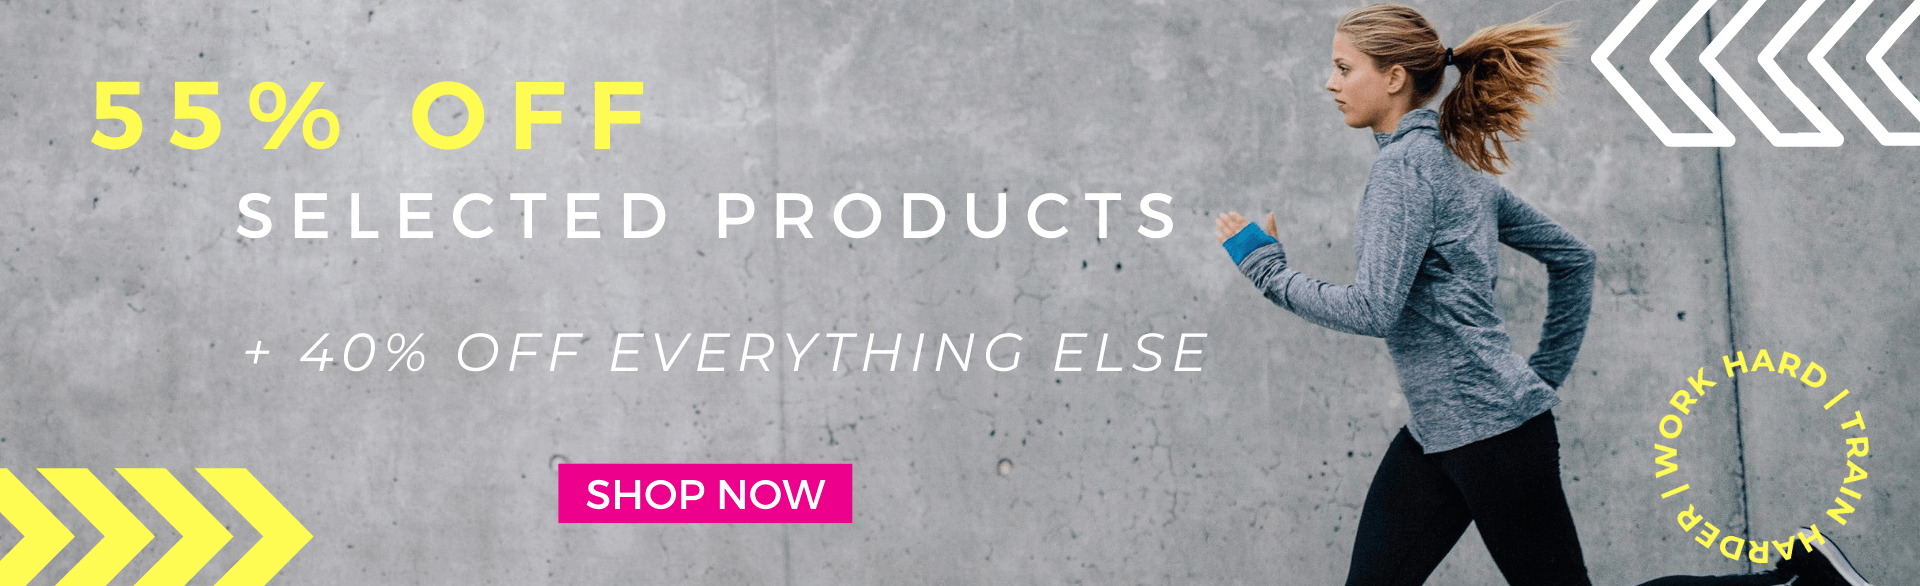 55% OFF SELECTED PRODUCTS